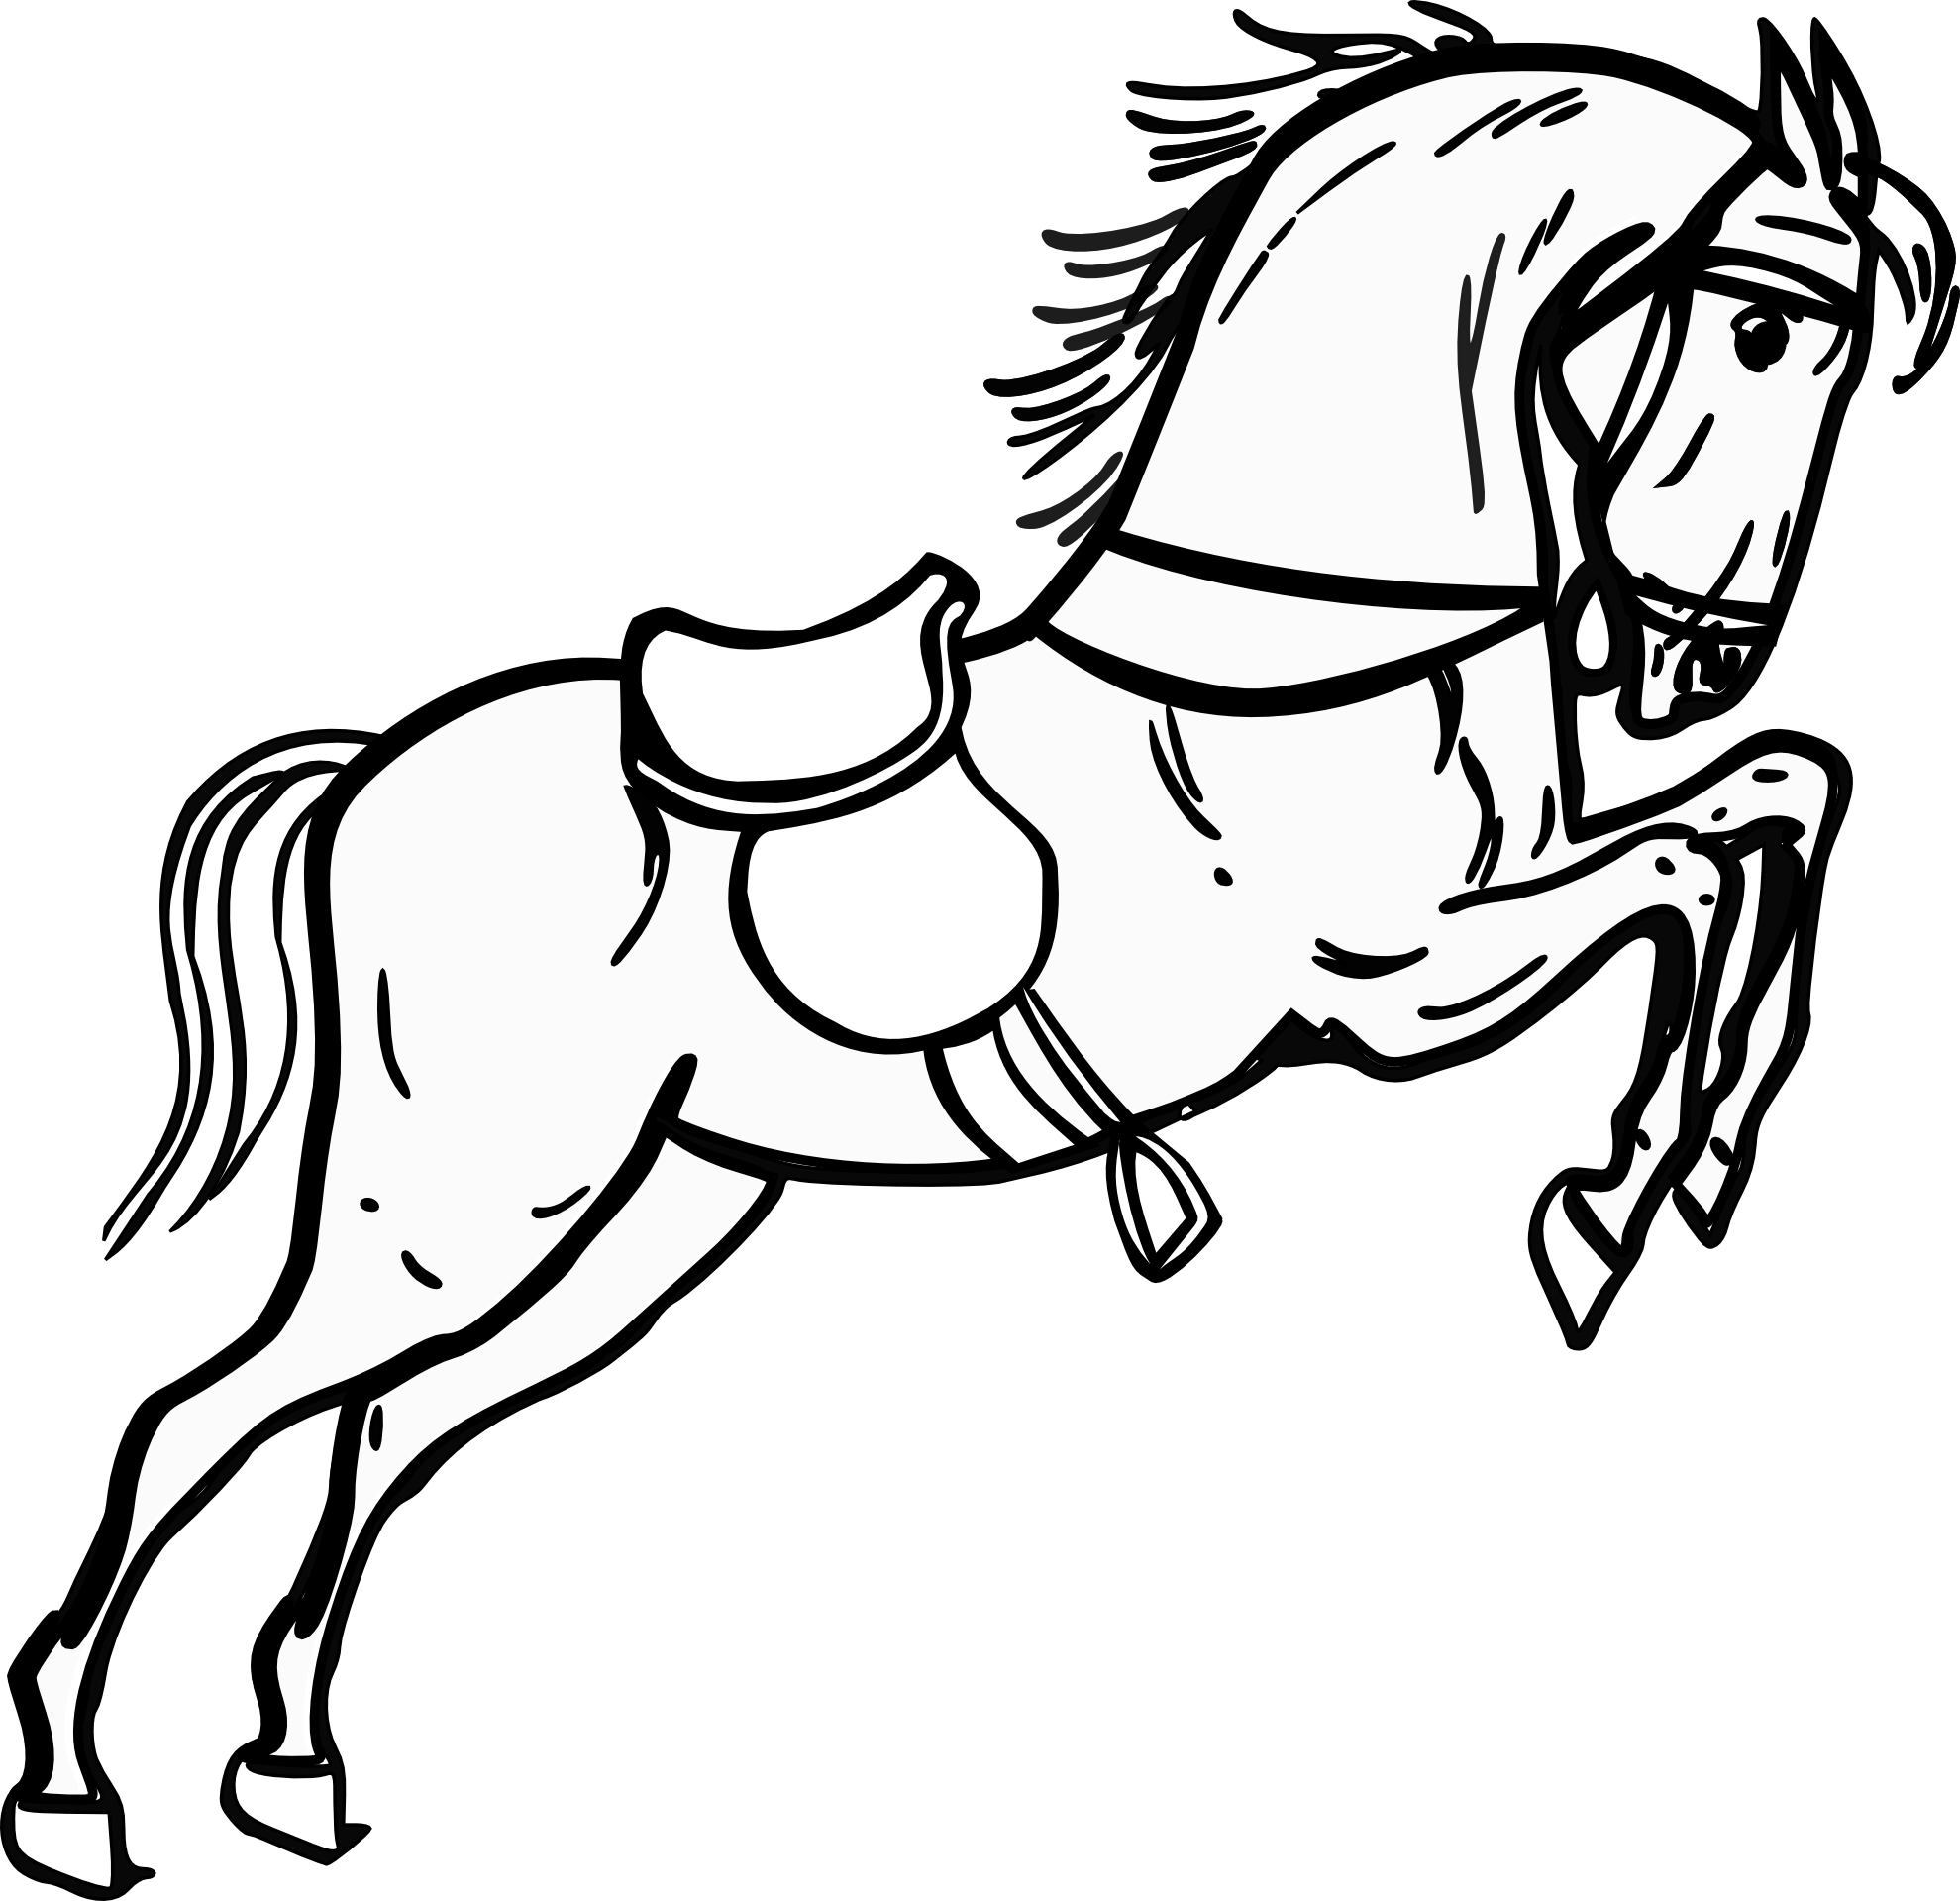 Horse clipart simple. Clip art black and